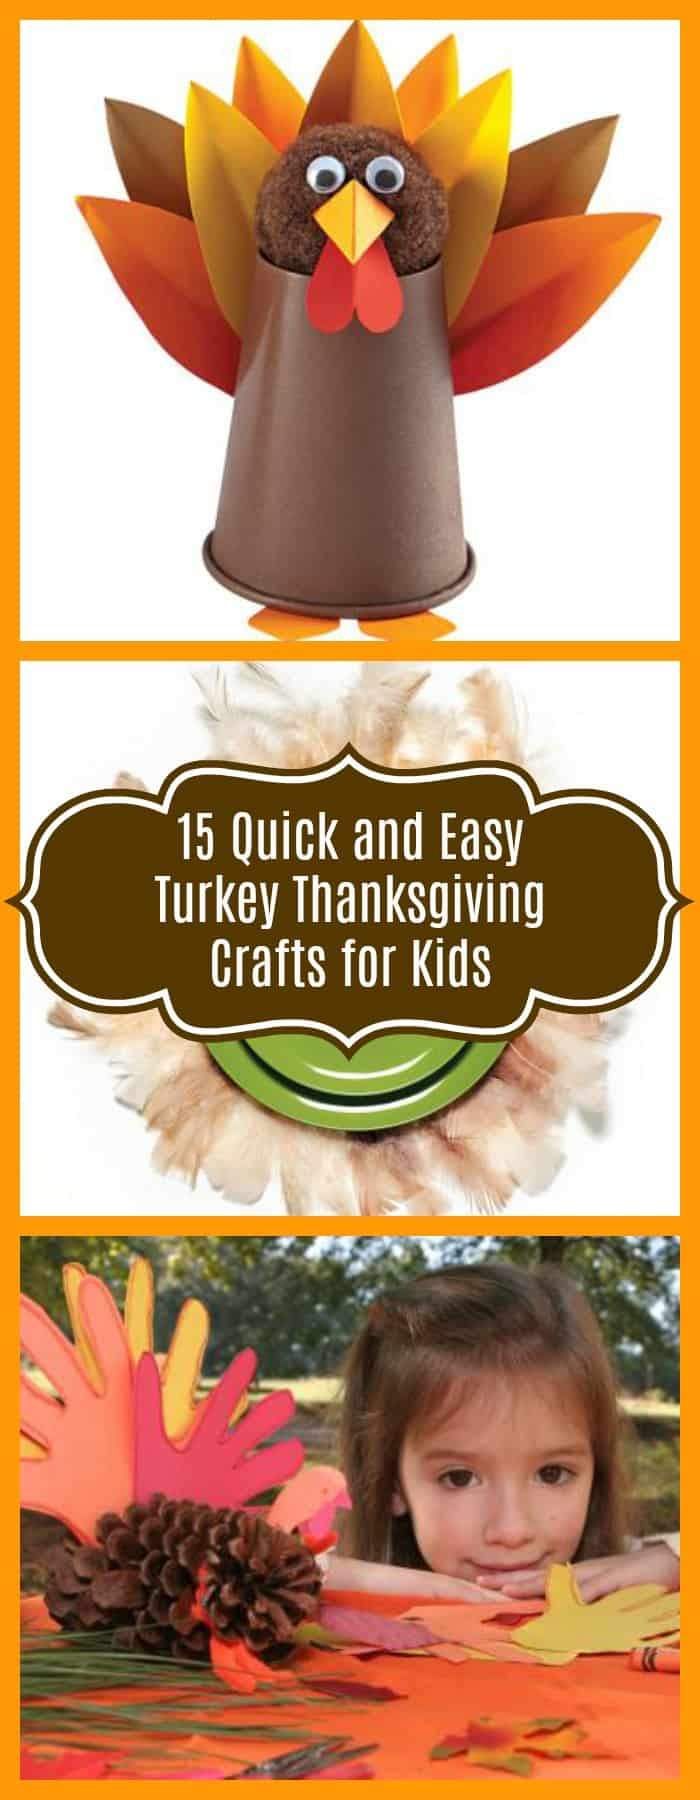 15 Easy Natural Make Up Tutorials 2014 For Beginners: 15 Quick And Easy Turkey Thanksgiving Crafts To Do With